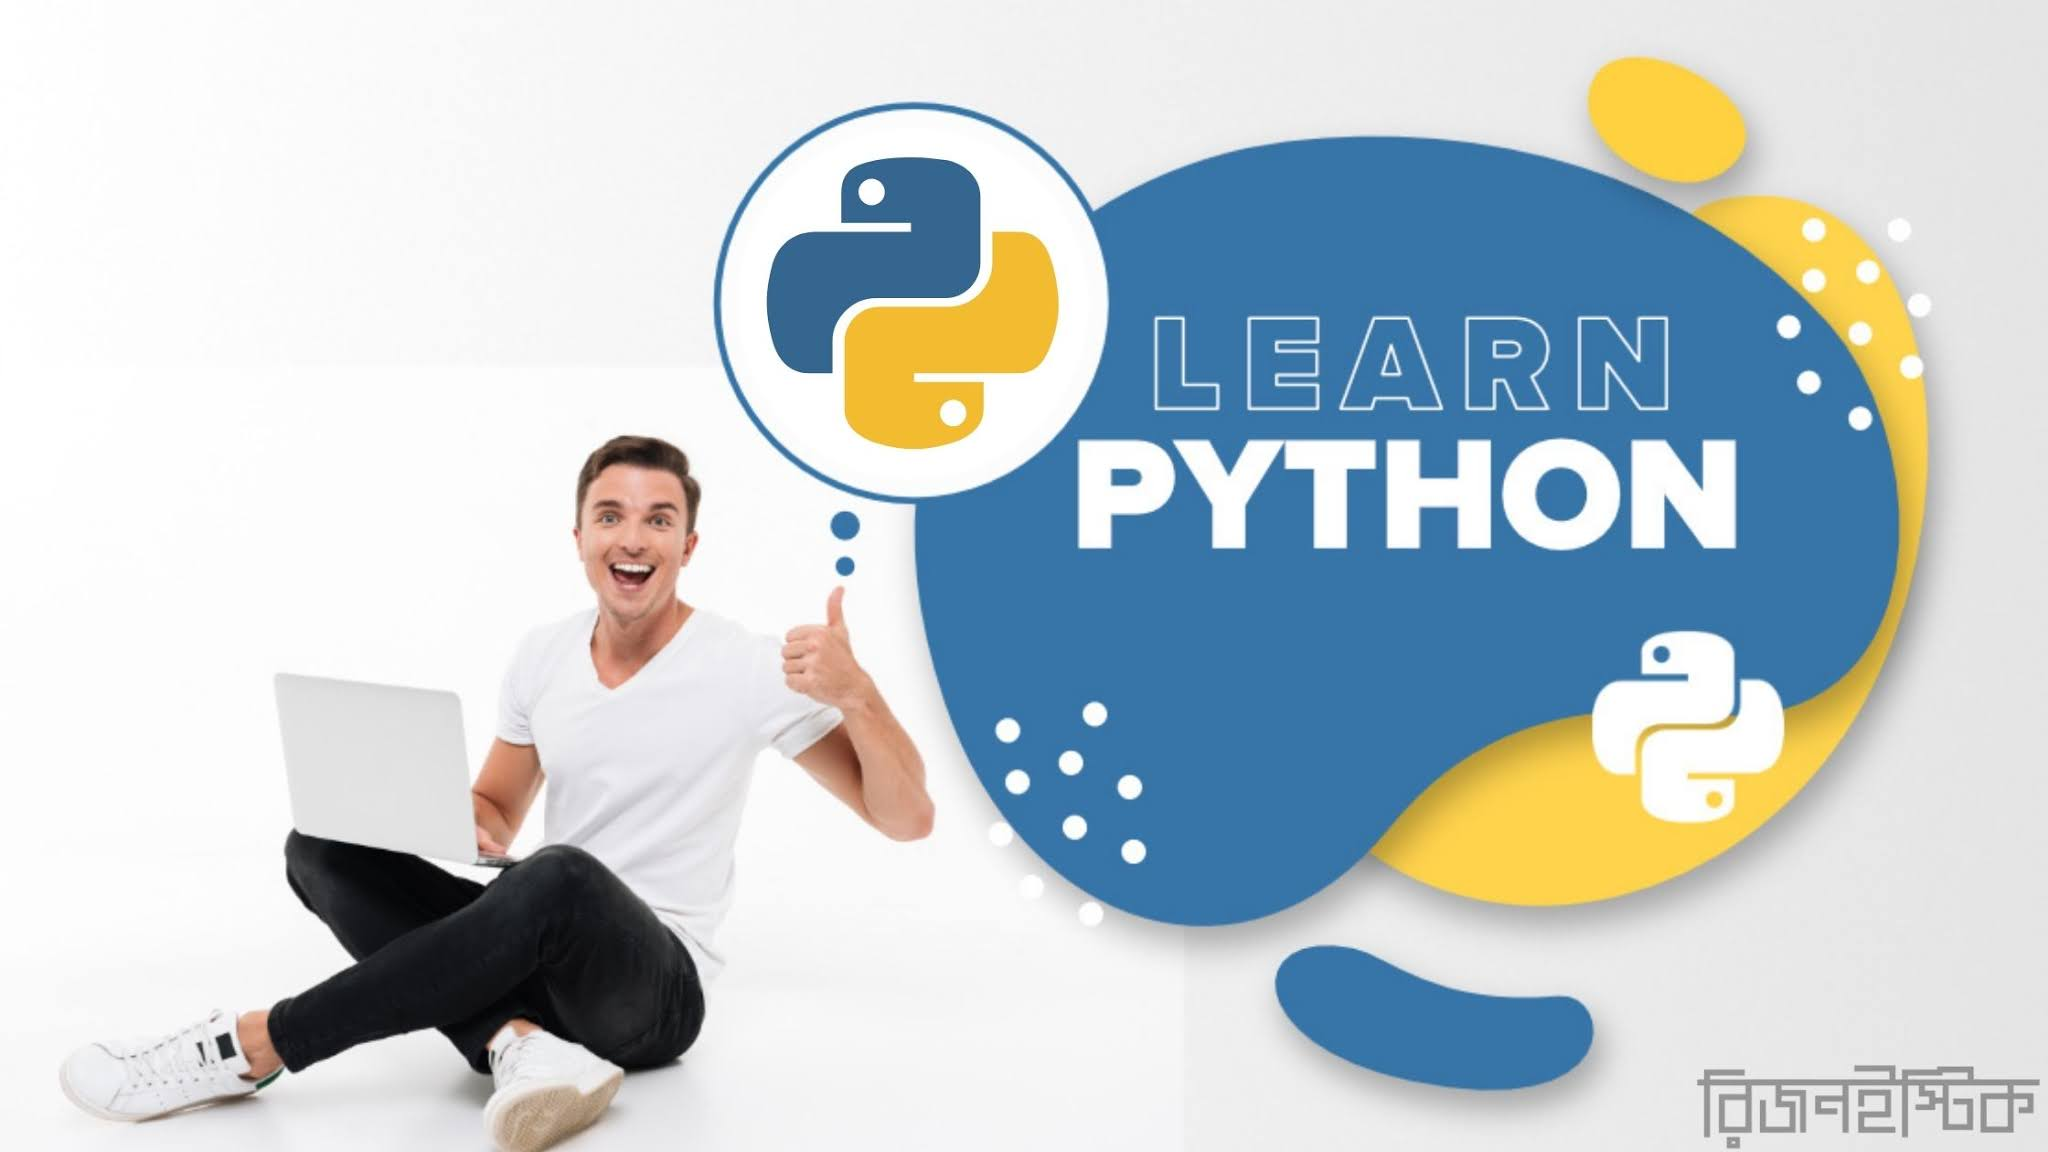 Detailed Outline to Learn Python, Learn Python Easily, Python Tutorials, How to start learning python,